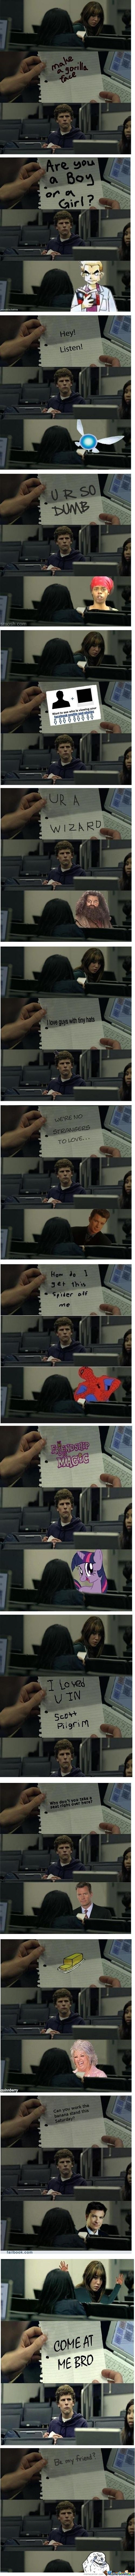 Best Of Social Network Meme